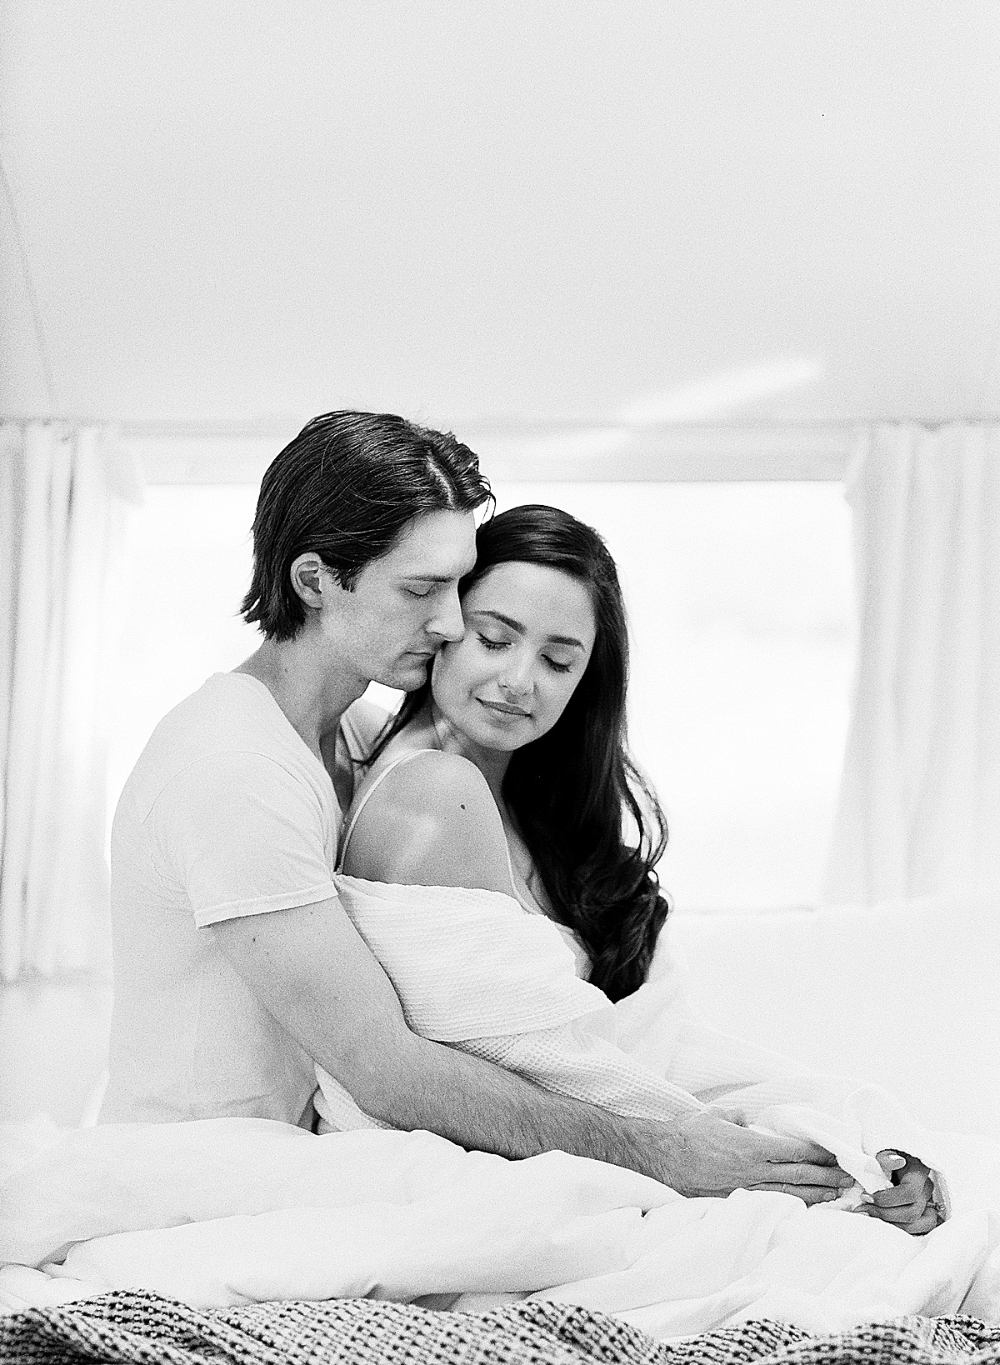 Black and White Portraits tell the emotional story a little better than color. The mood is more intense. You instantly see the couple's connection. #blackandwhite #lifestylesession #photography #engagementphotos